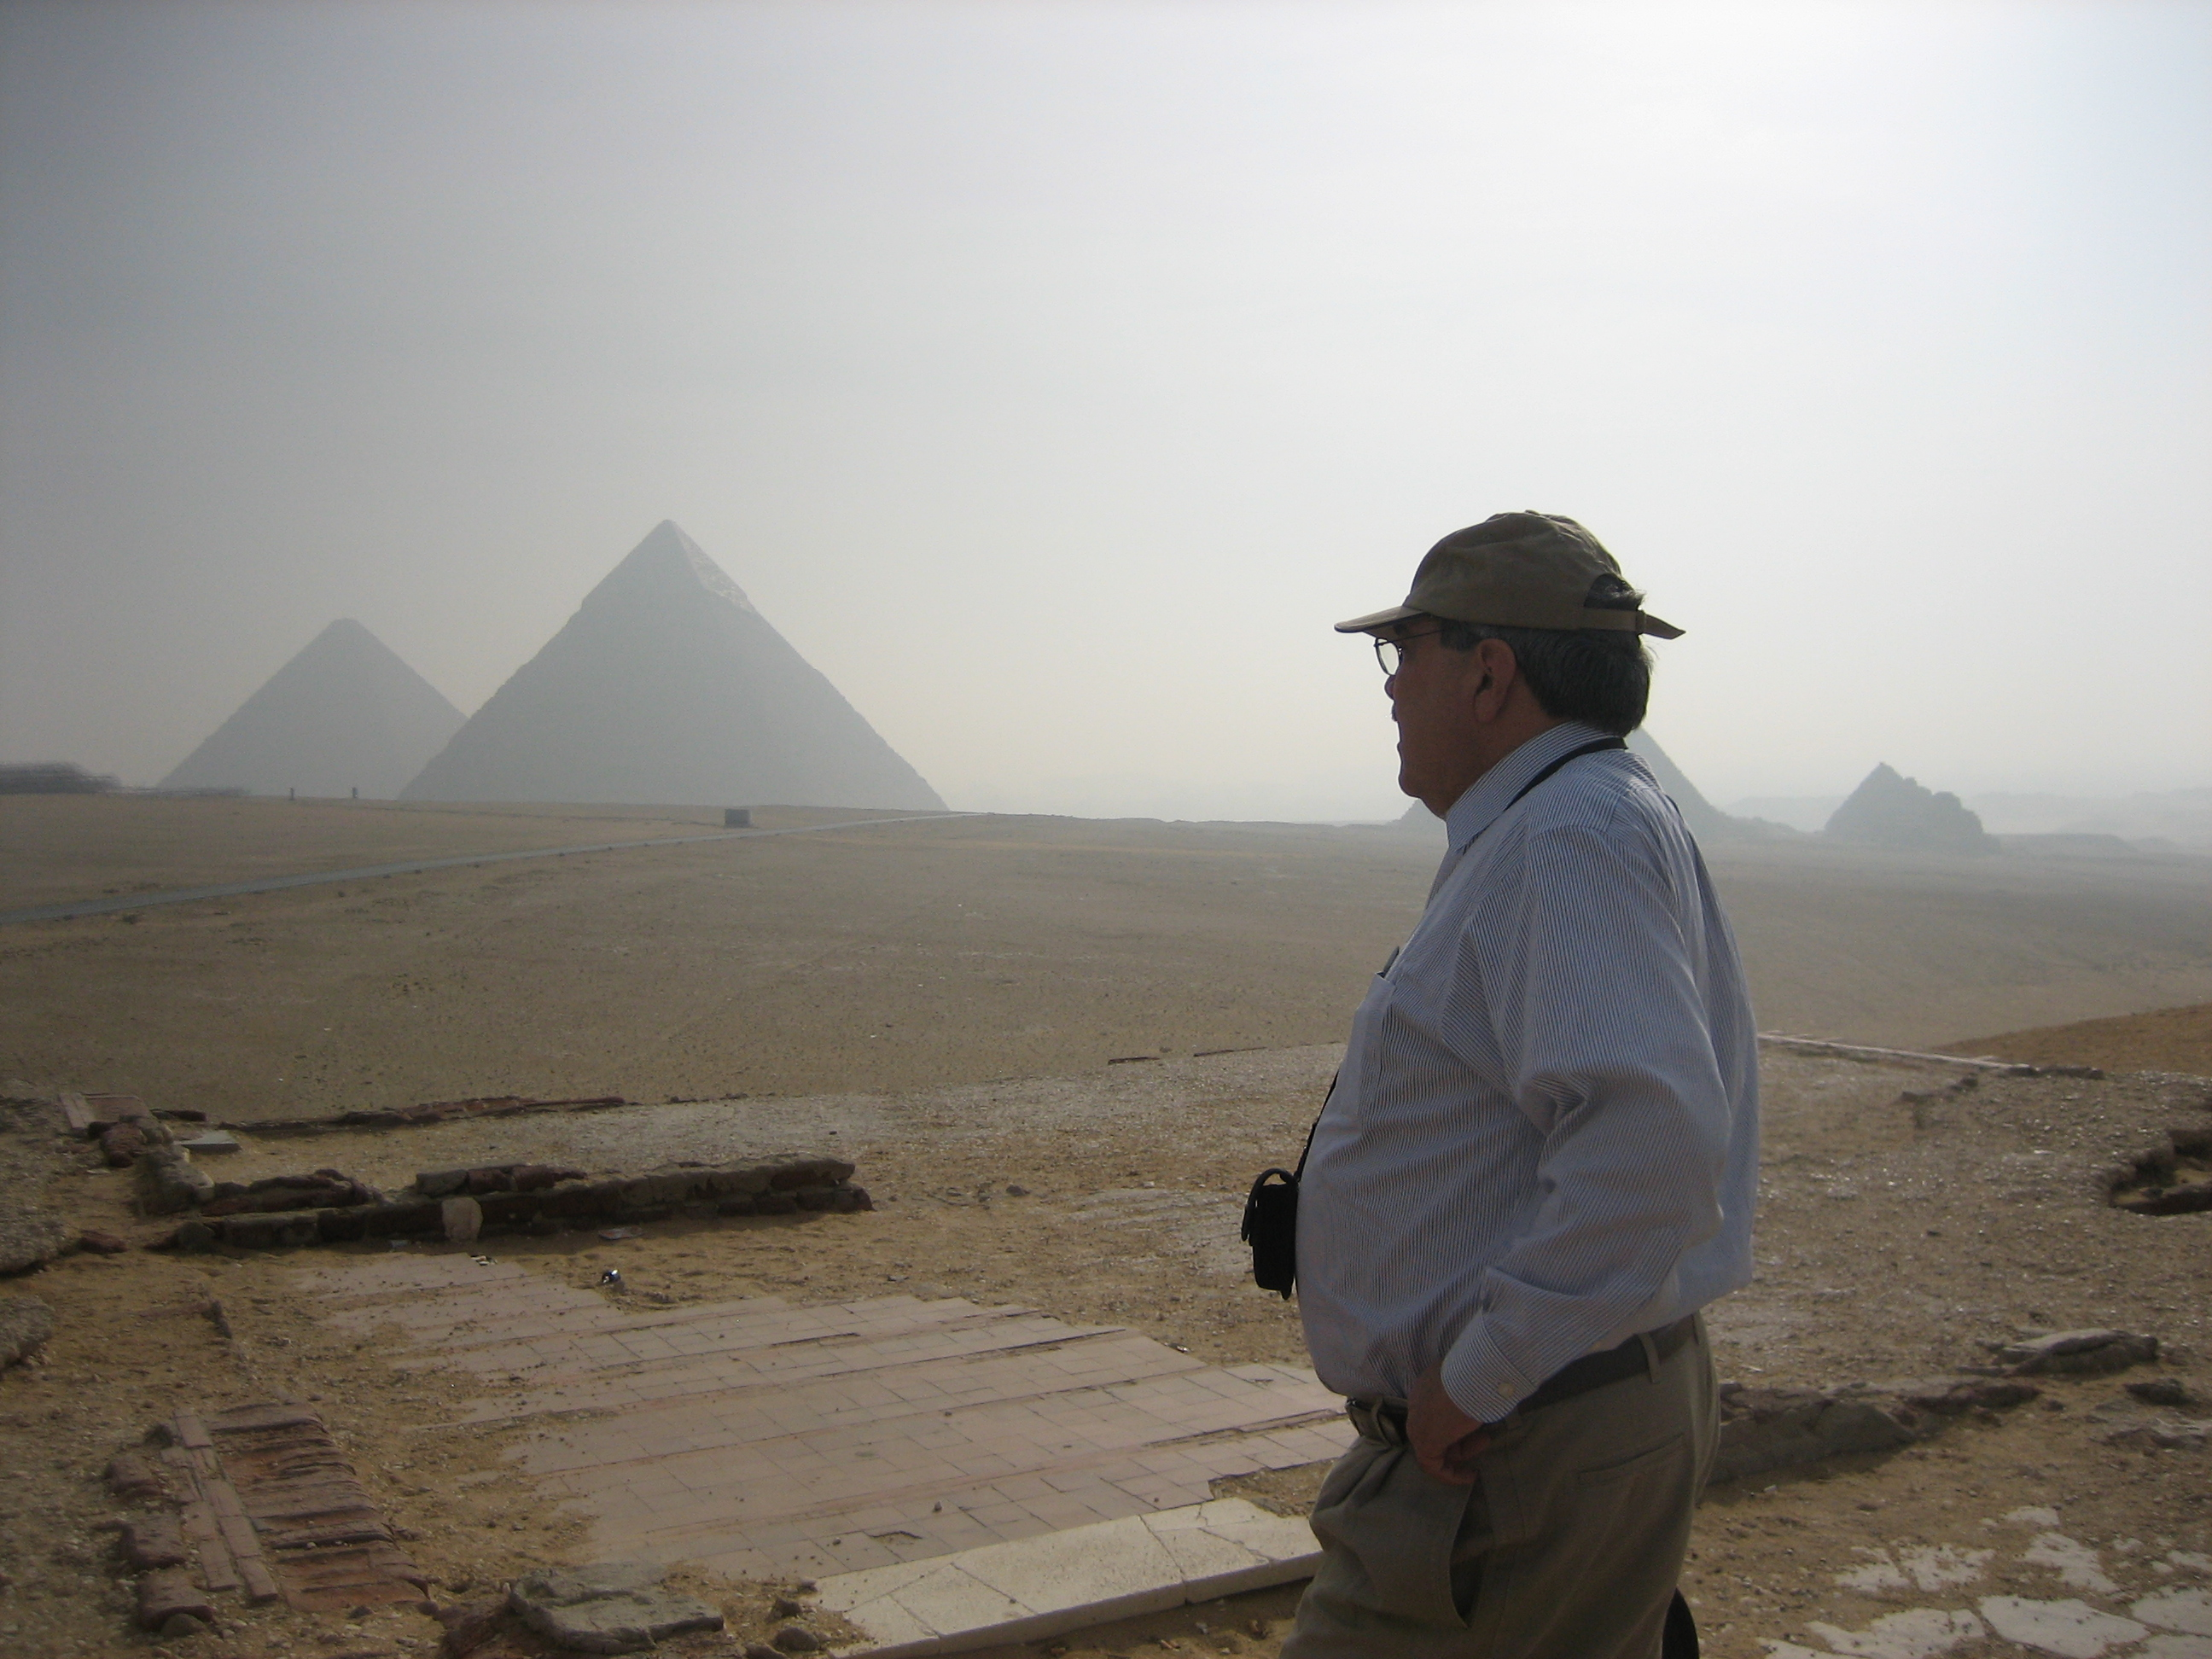 Congressman Butterfield in Egypt